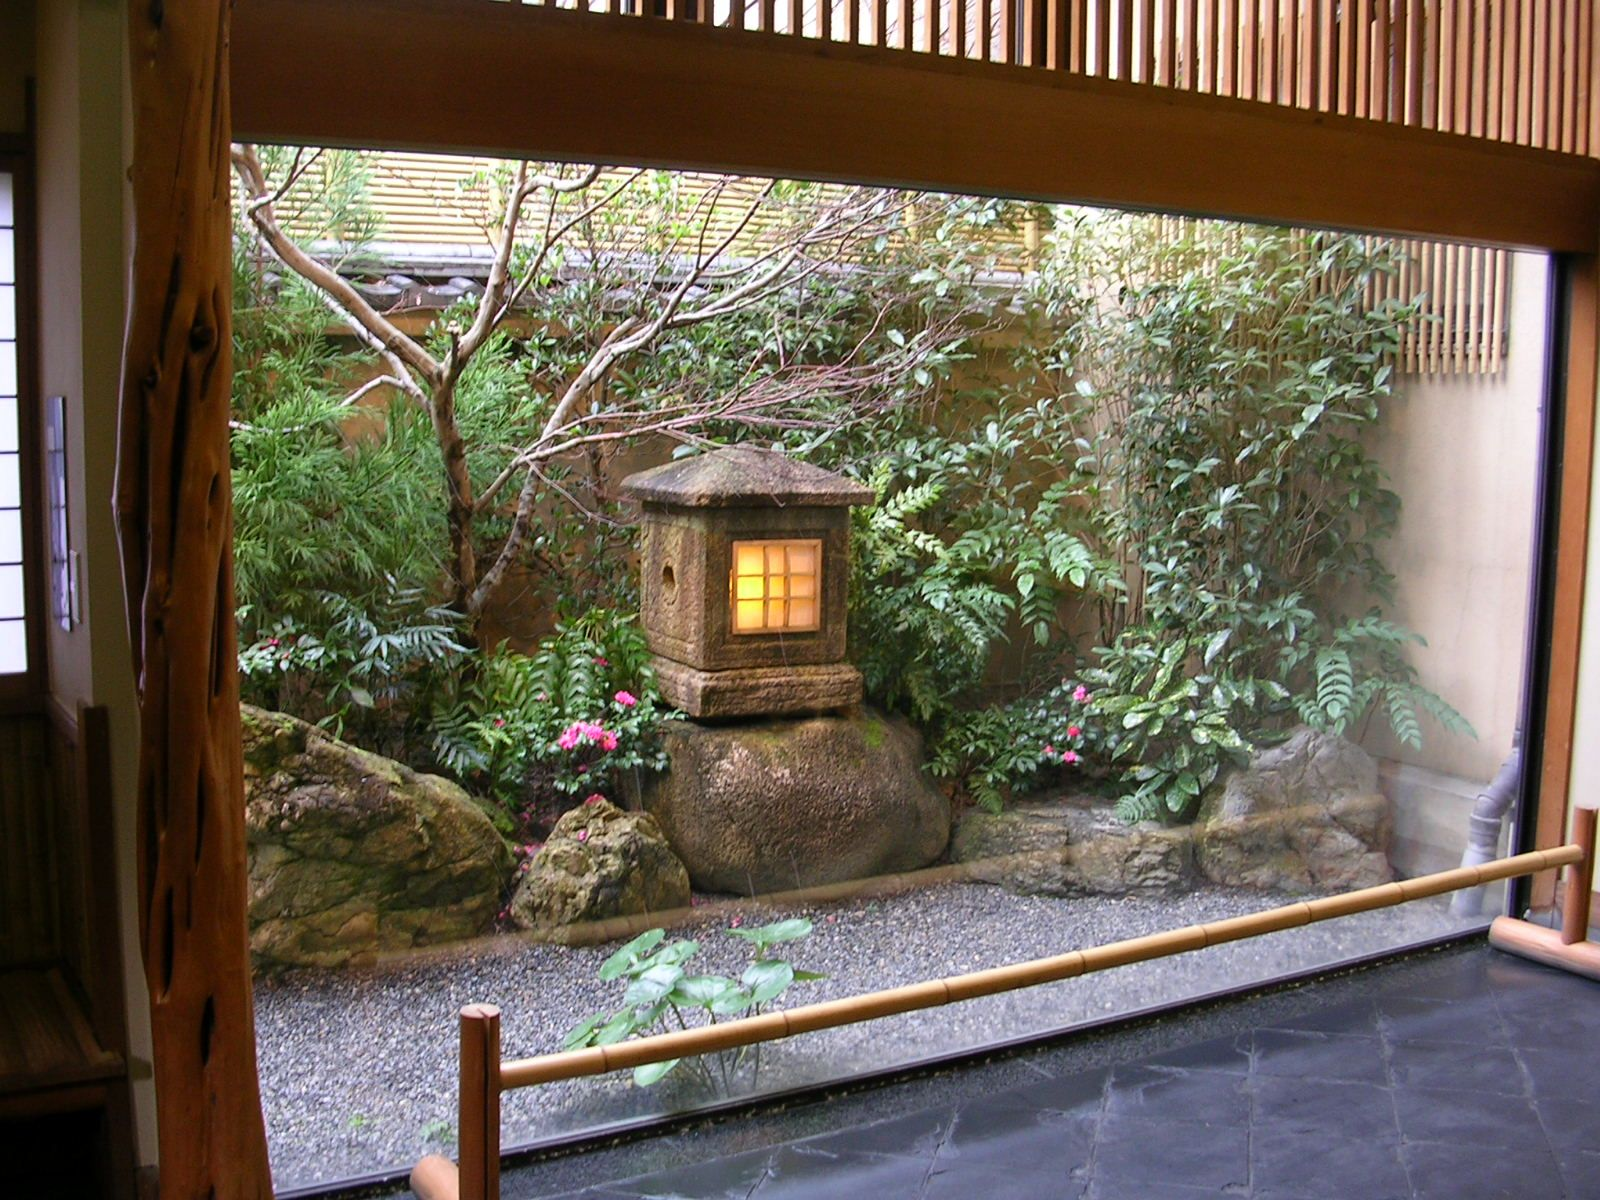 Indoor Zen Garden Ideas Basement Window Basement Window In 2019 Pinterest